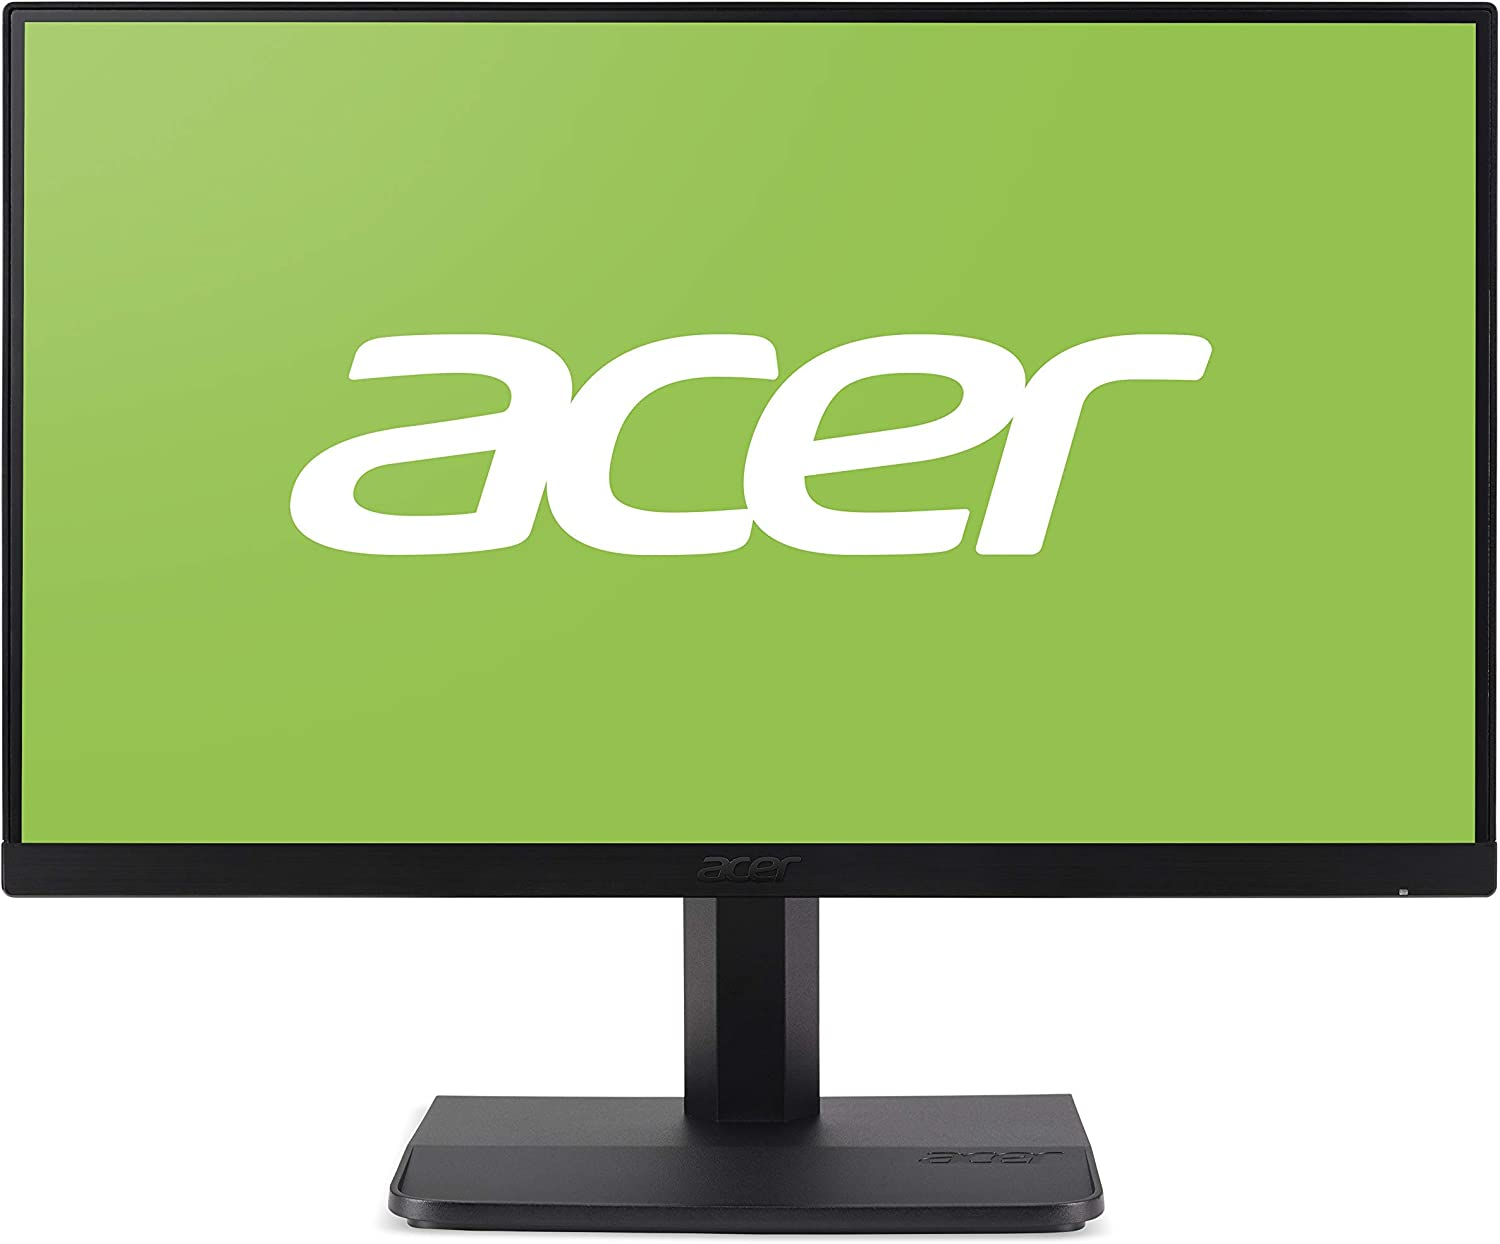 "Acer ET1-23.8"" Monitor Display Full HD 1920x1080 60Hz 16:9 4ms IPS 250Nit (Renewed)"